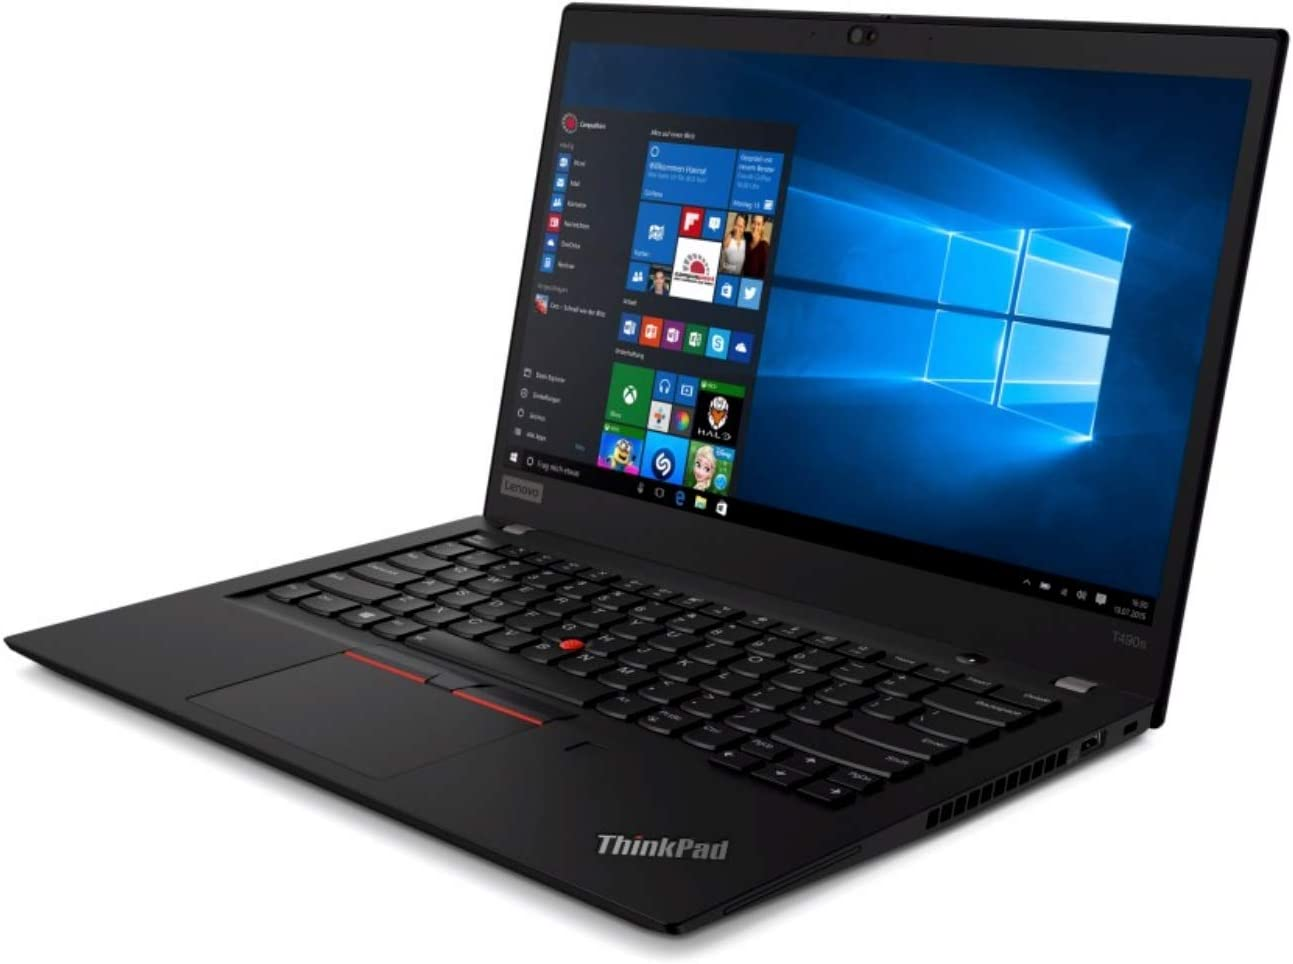 "OEM Lenovo ThinkPad T490s Laptop 14"" FHD IPS Display 1920x1080, Intel Quad Core i5-8265U, 8GB RAM, 256GB NVMe, Fingerprint, W10P"